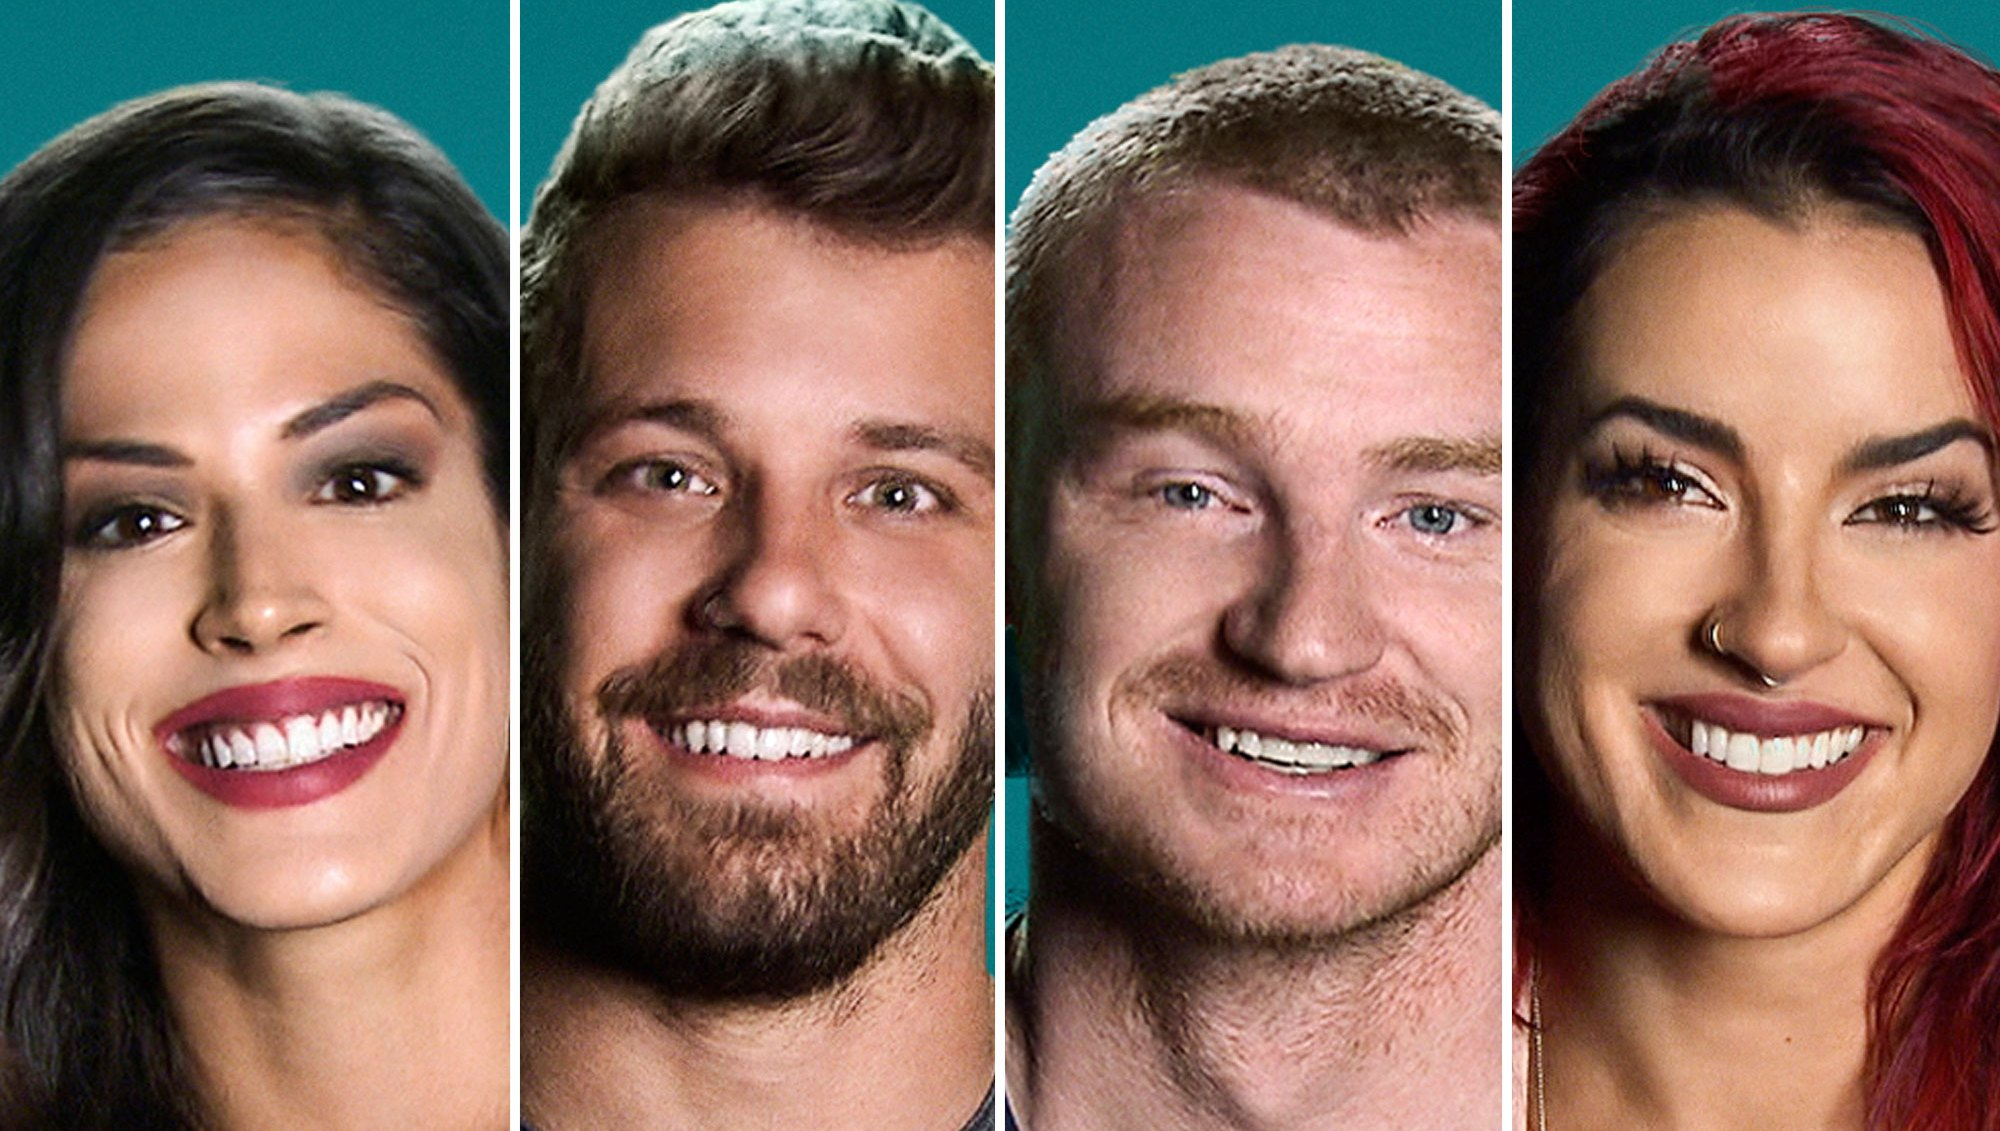 Nany, Paulie, Wes and Cara the challenge